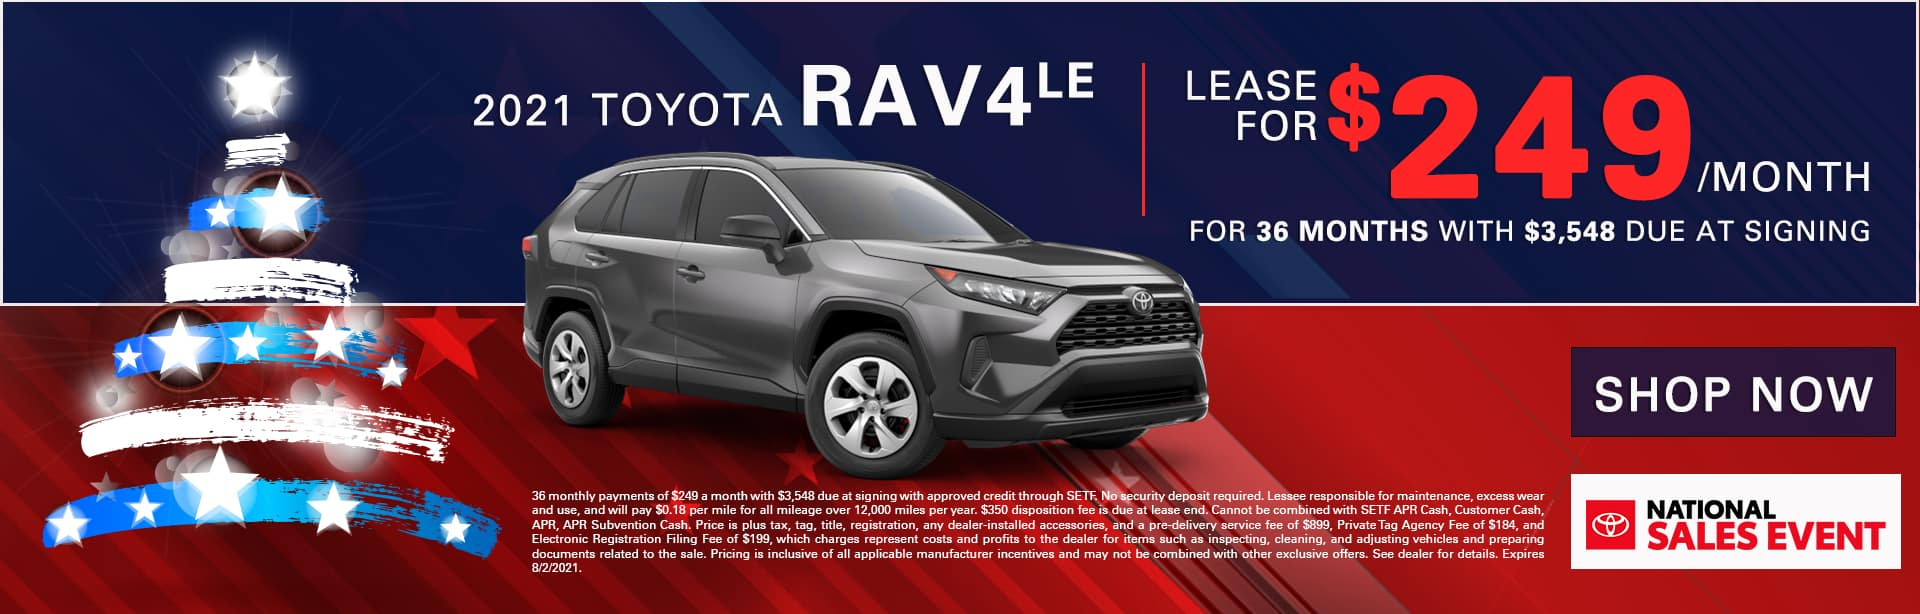 2021 Toyota RAV4 LE | Lease For $249/Month for 36 Months with $3,548 Due At Signing